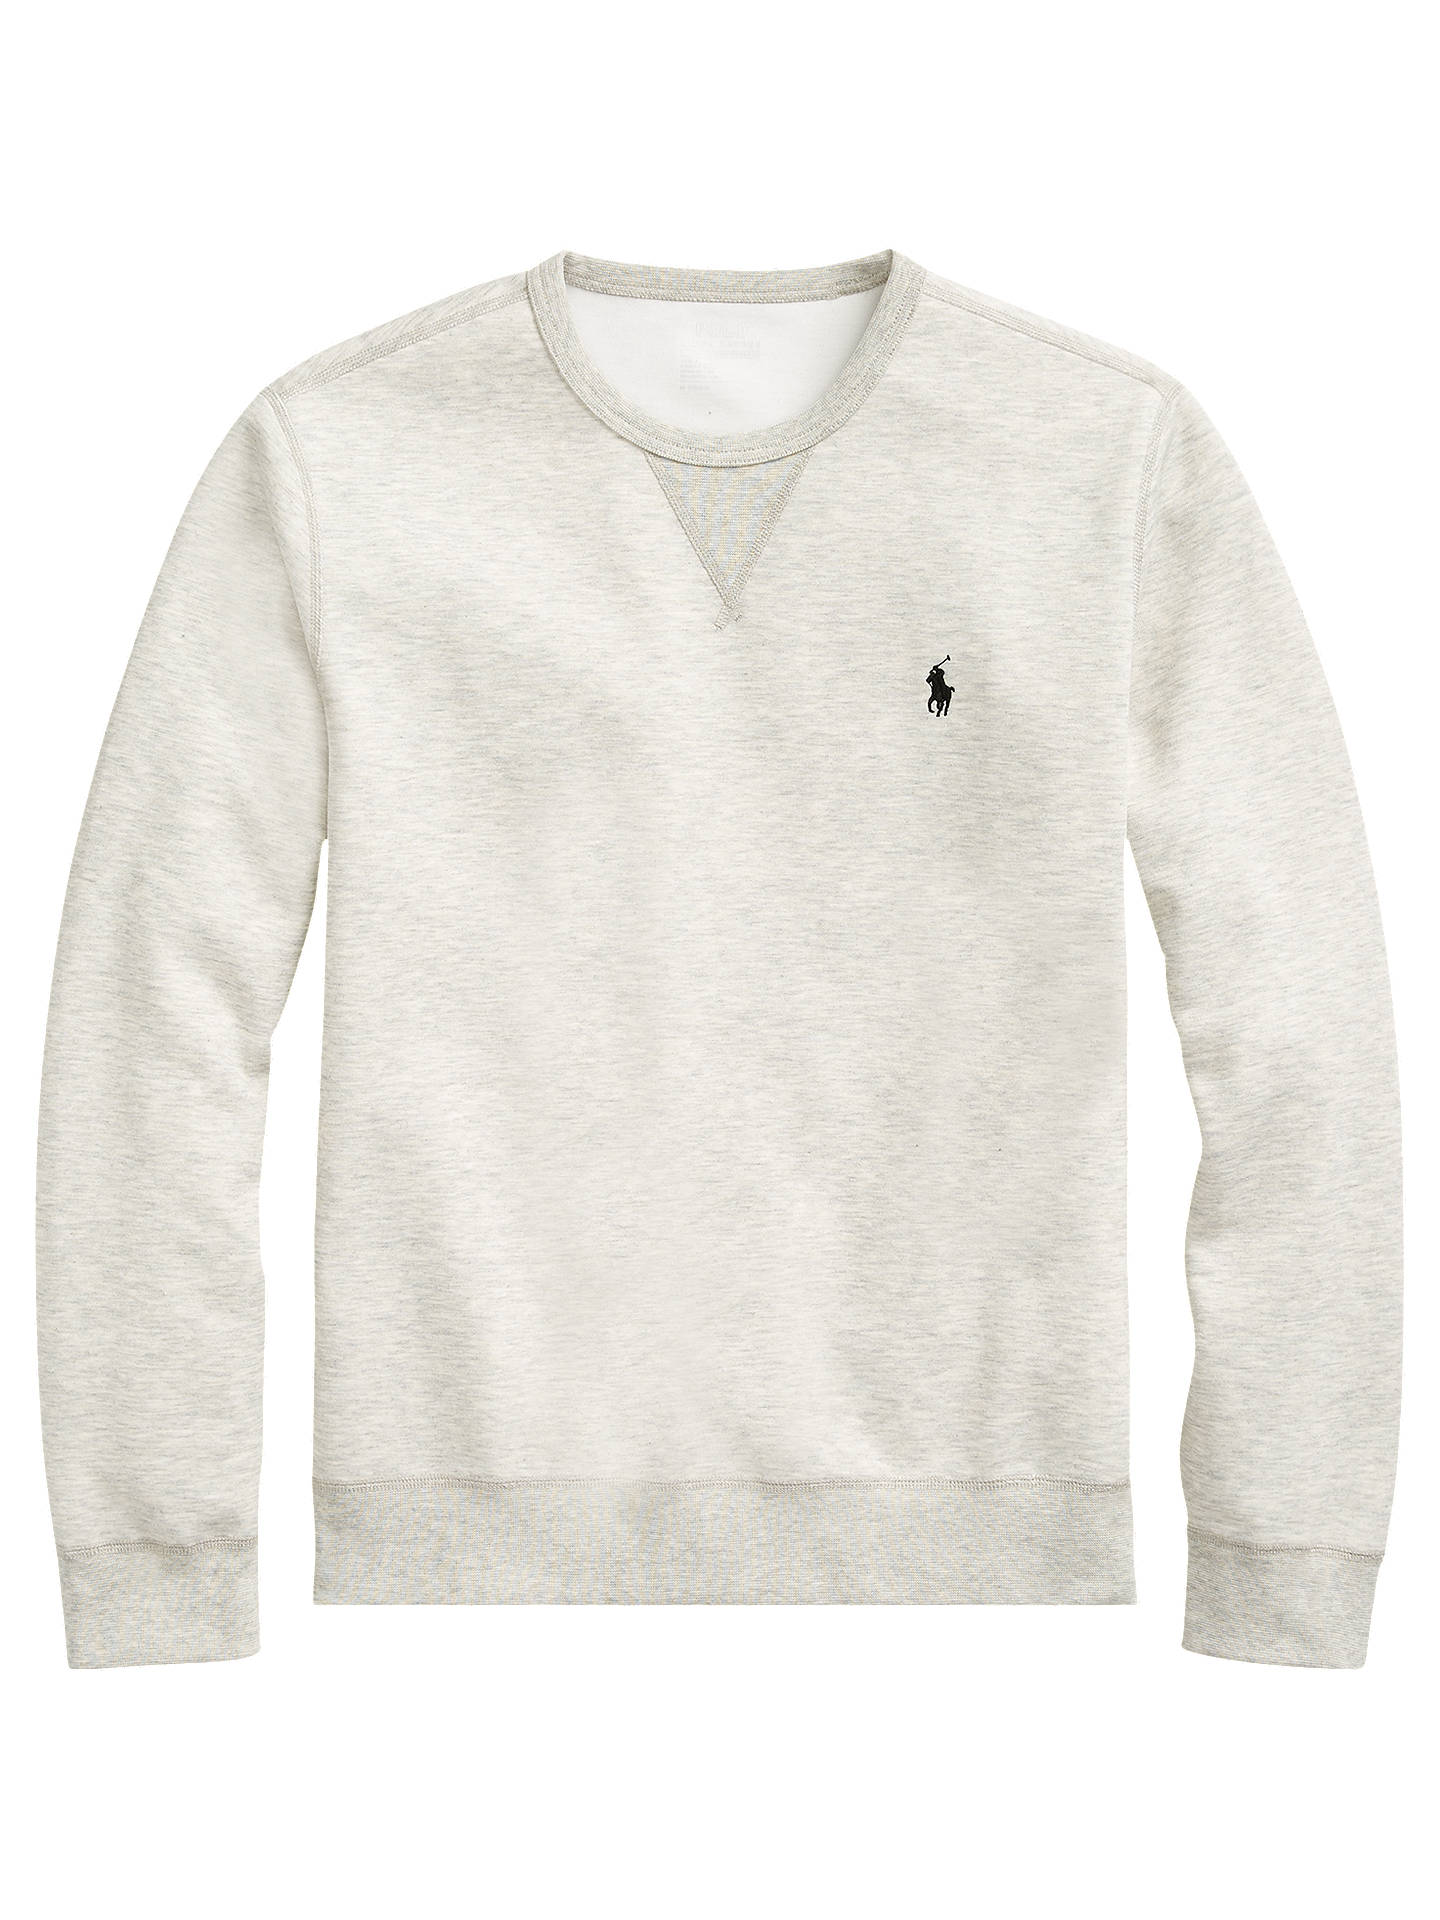 Buy Polo Ralph Lauren Double Knit Crew Neck Jumper, Light Heather Grey, XL Online at johnlewis.com